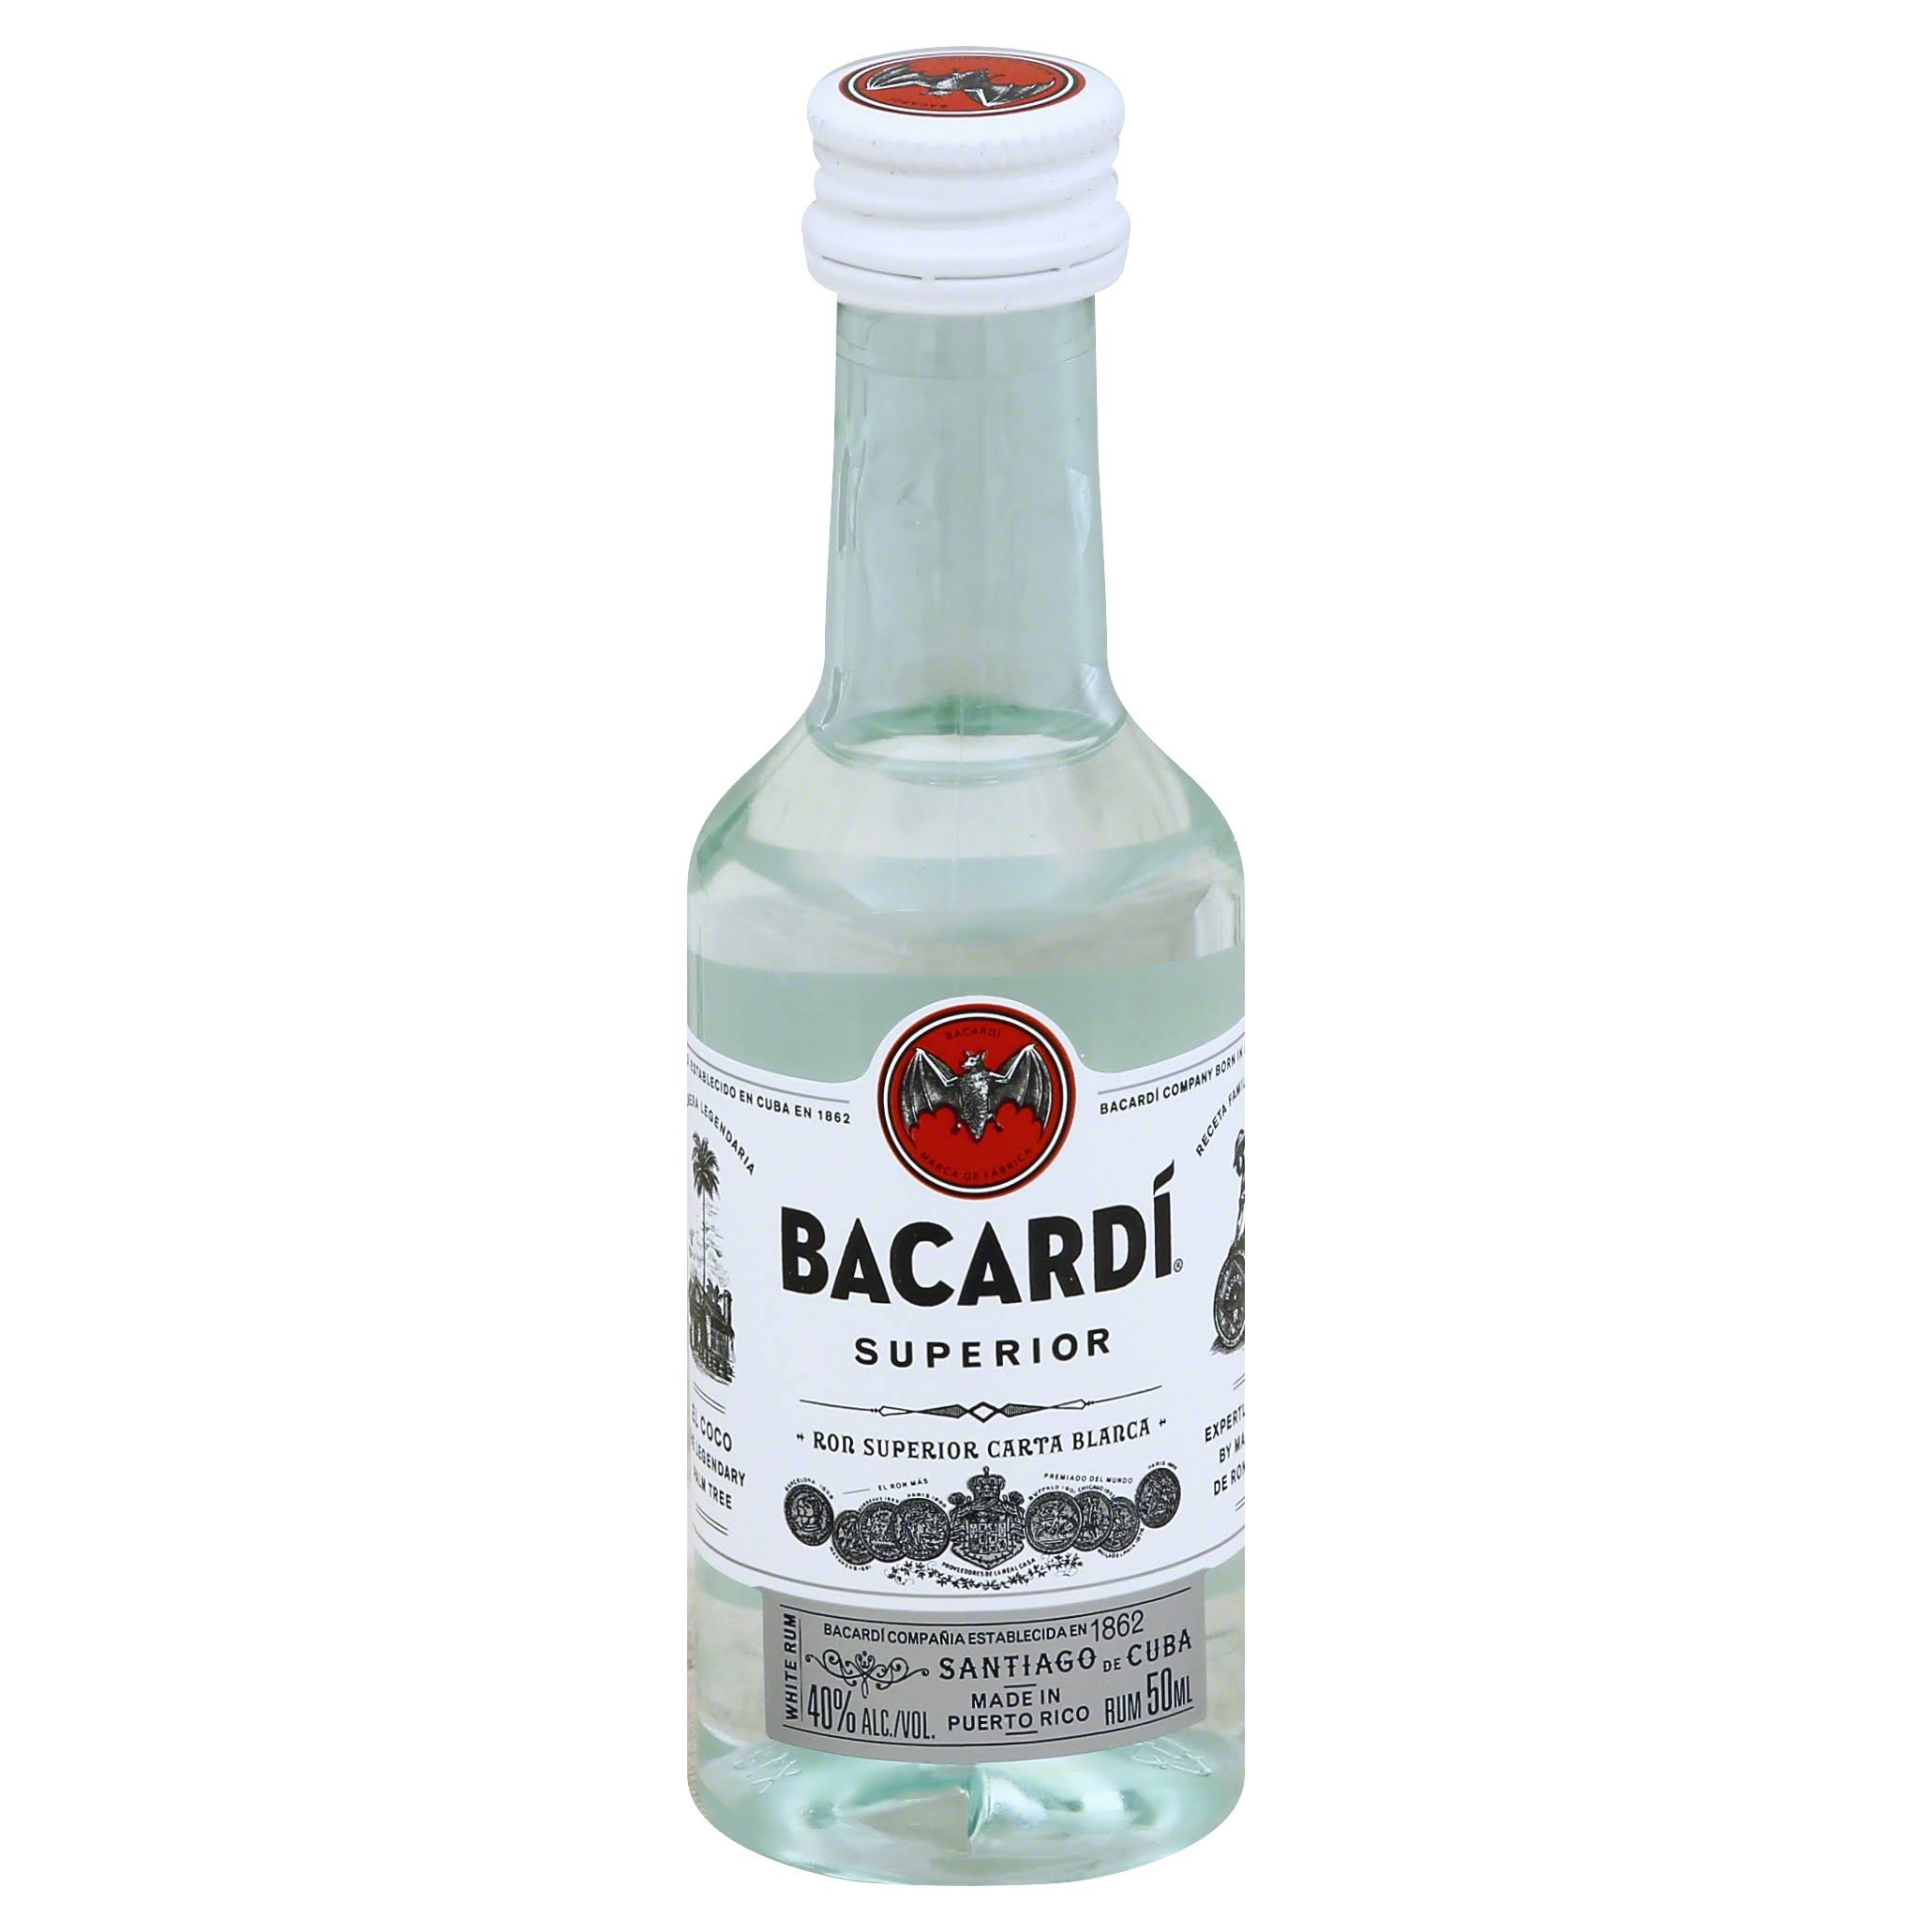 Bacardi Superior Rum - 50ml